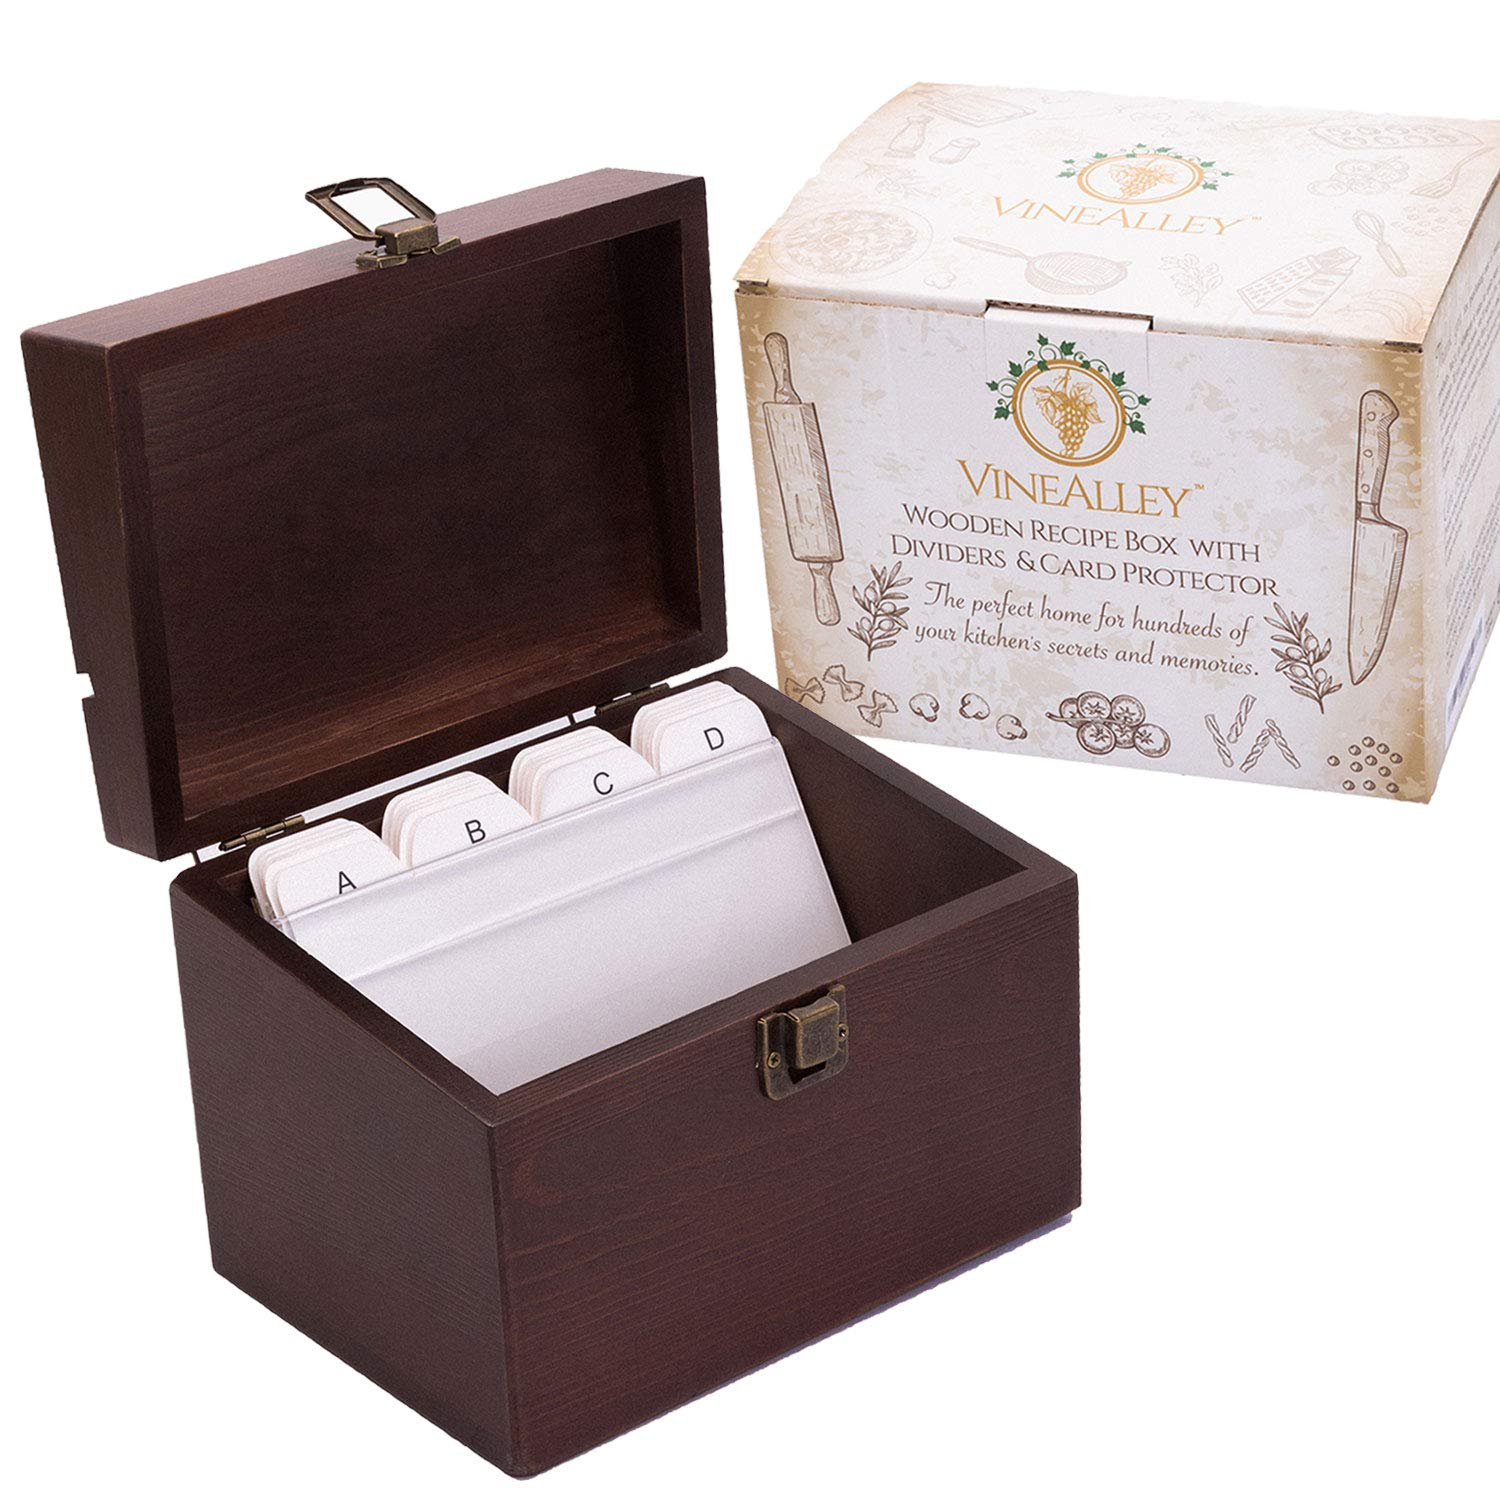 VINEALLEY Handcrafted Vintage Wood Recipe Box with 4x6 Recipe Cards Dividers & Kitchen Recipe Holder Groove & Card protector, Large Recipe organizer box, 300+ Recipe & index cards Storage, Gift Box by VineAlley